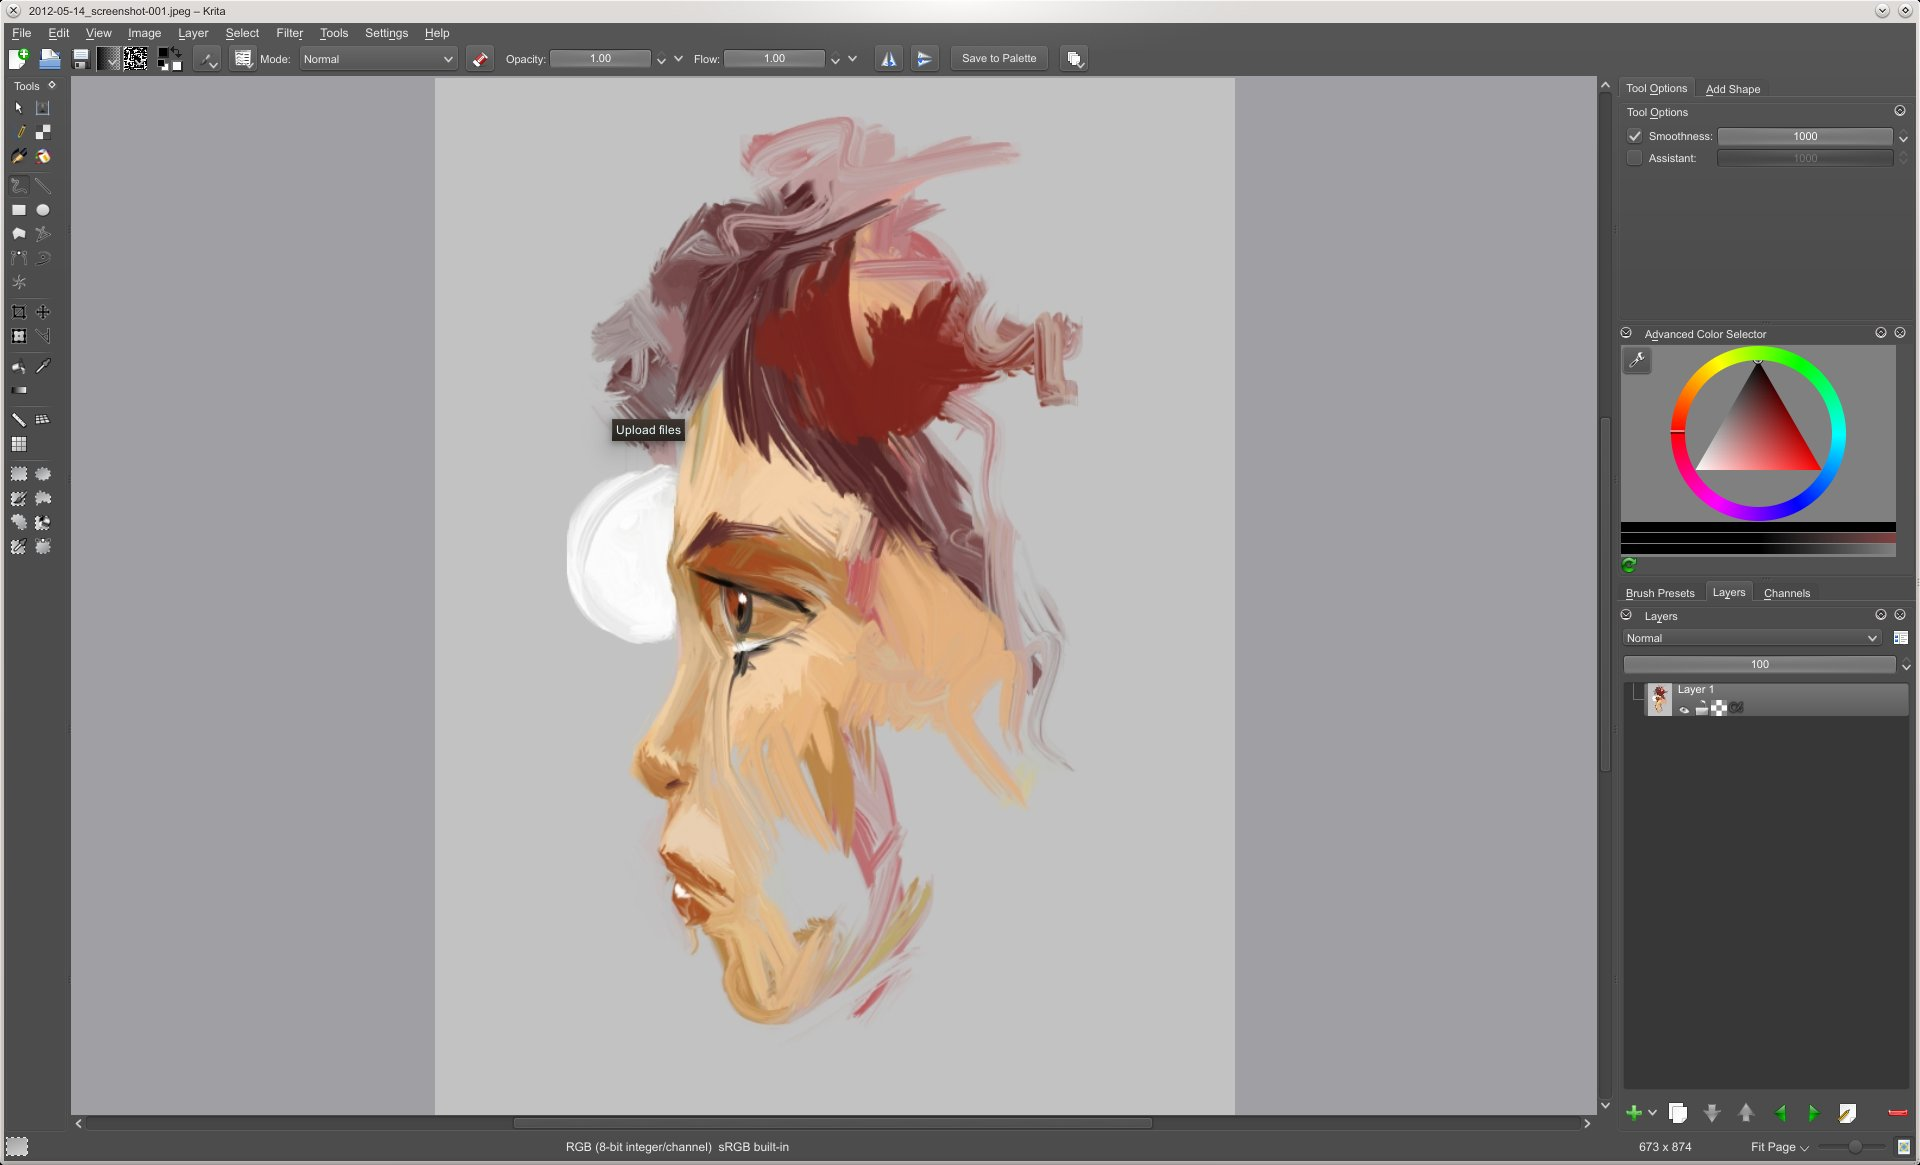 Still In Progress, The First Results Of The Textured Brush Feature Are Now  Available Artists Can Create Livelier, Moreanic Brush Strokes By  Blending